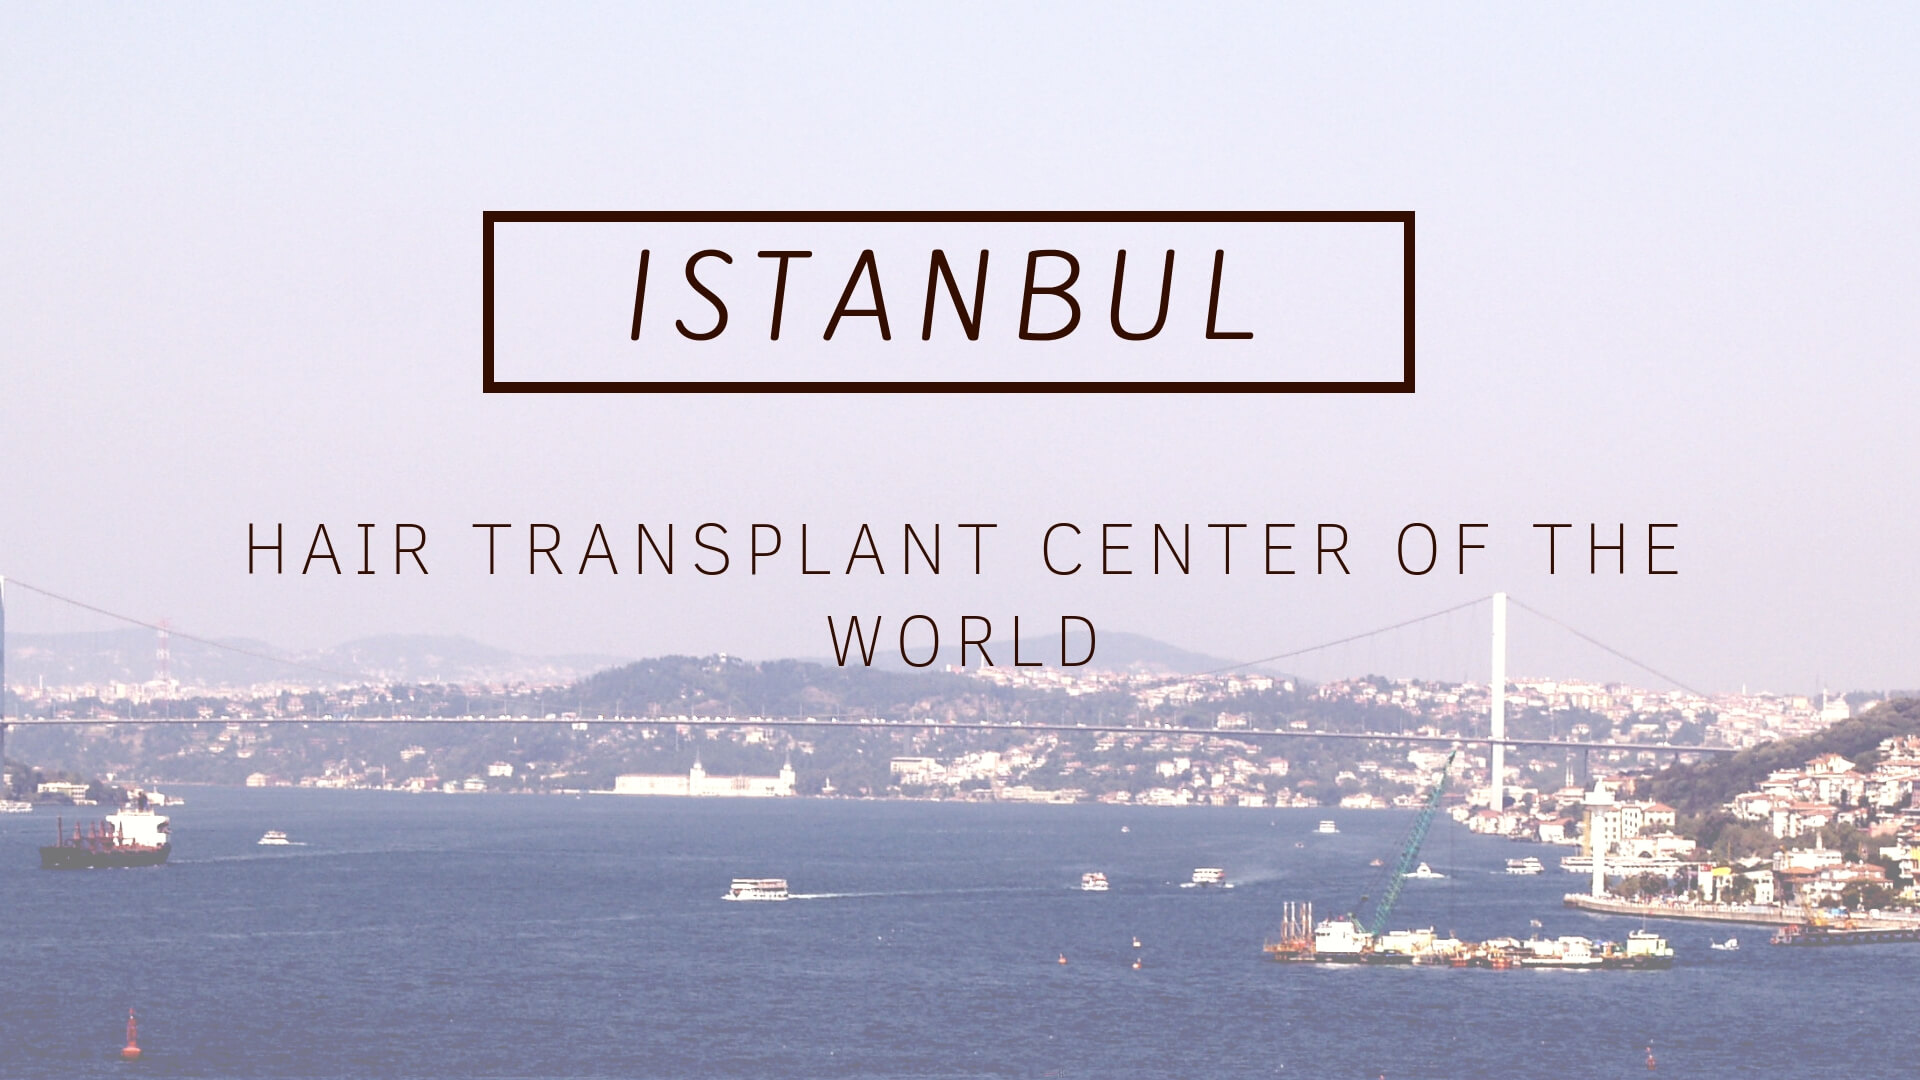 Istanbul hair transplant center of the world